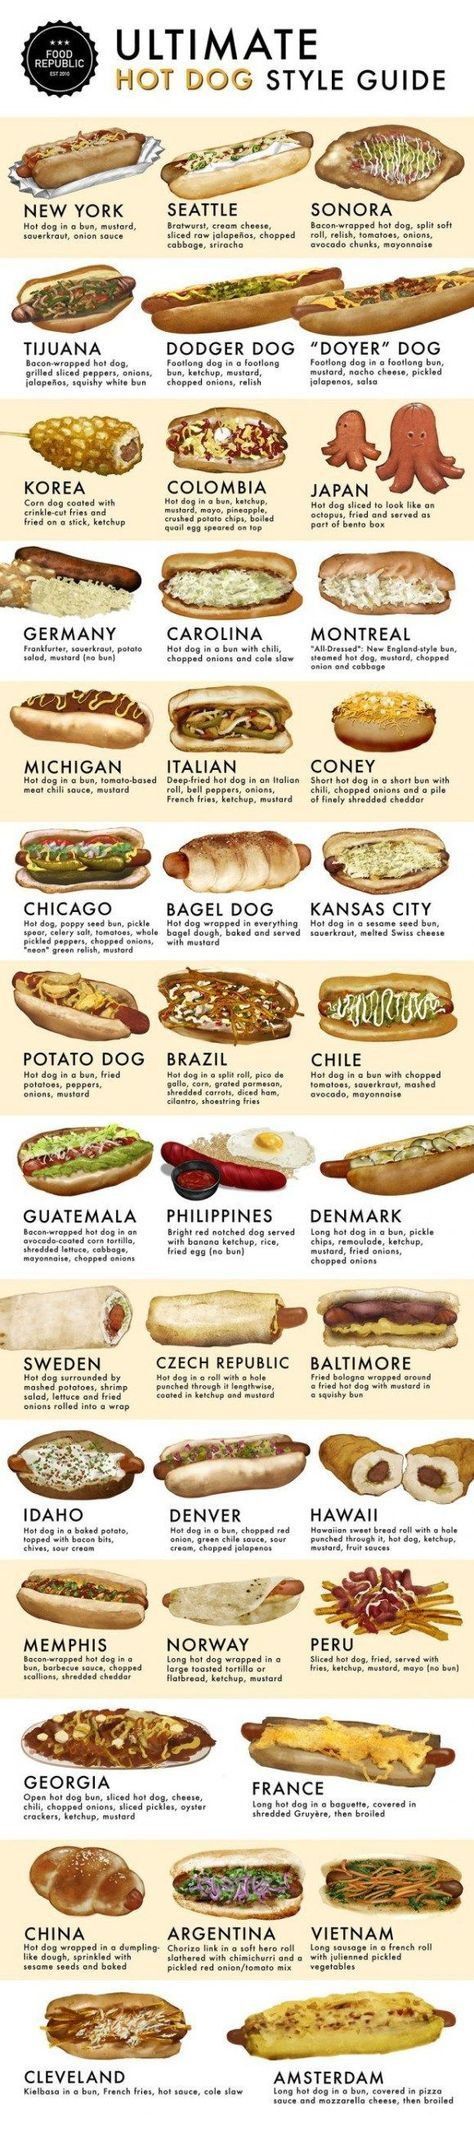 Inspiration: hot dog bar or summer BBQ with gourmet hots.